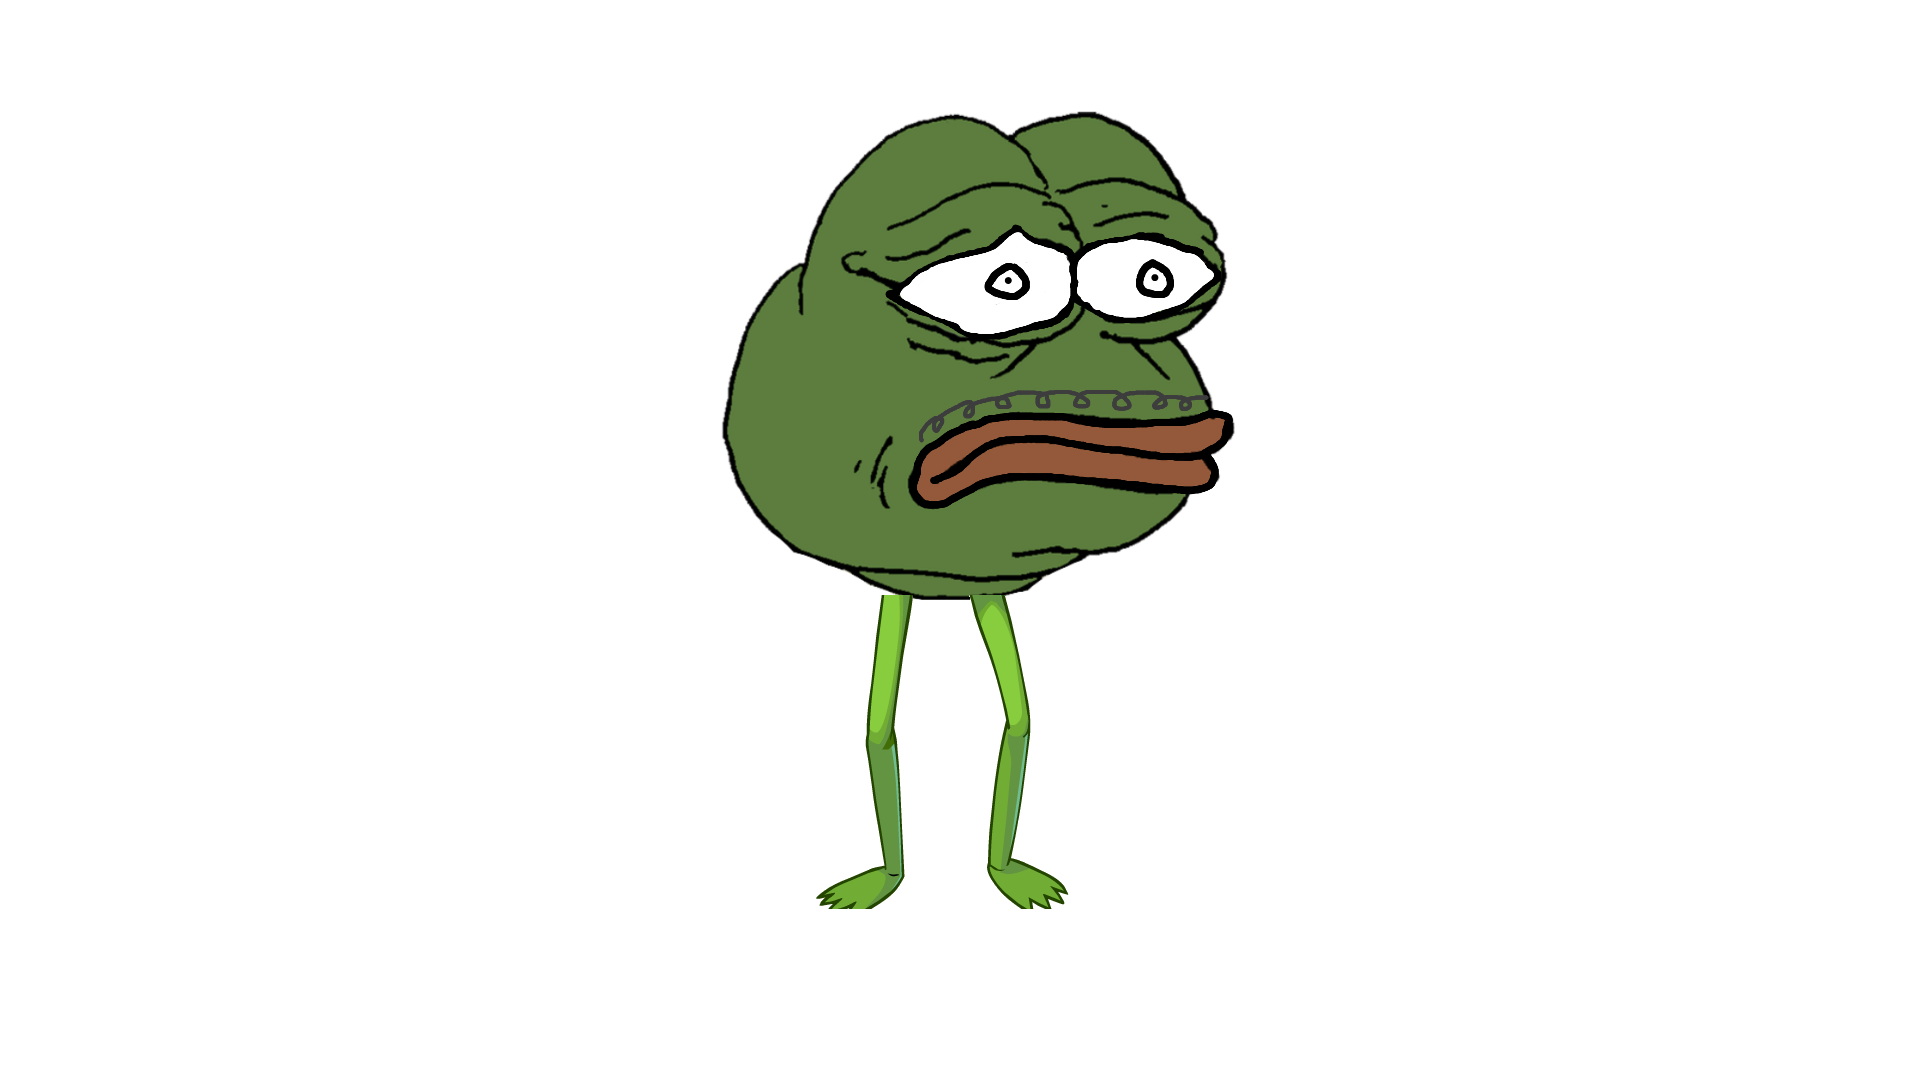 Weed mlg png. Image pepe battle for